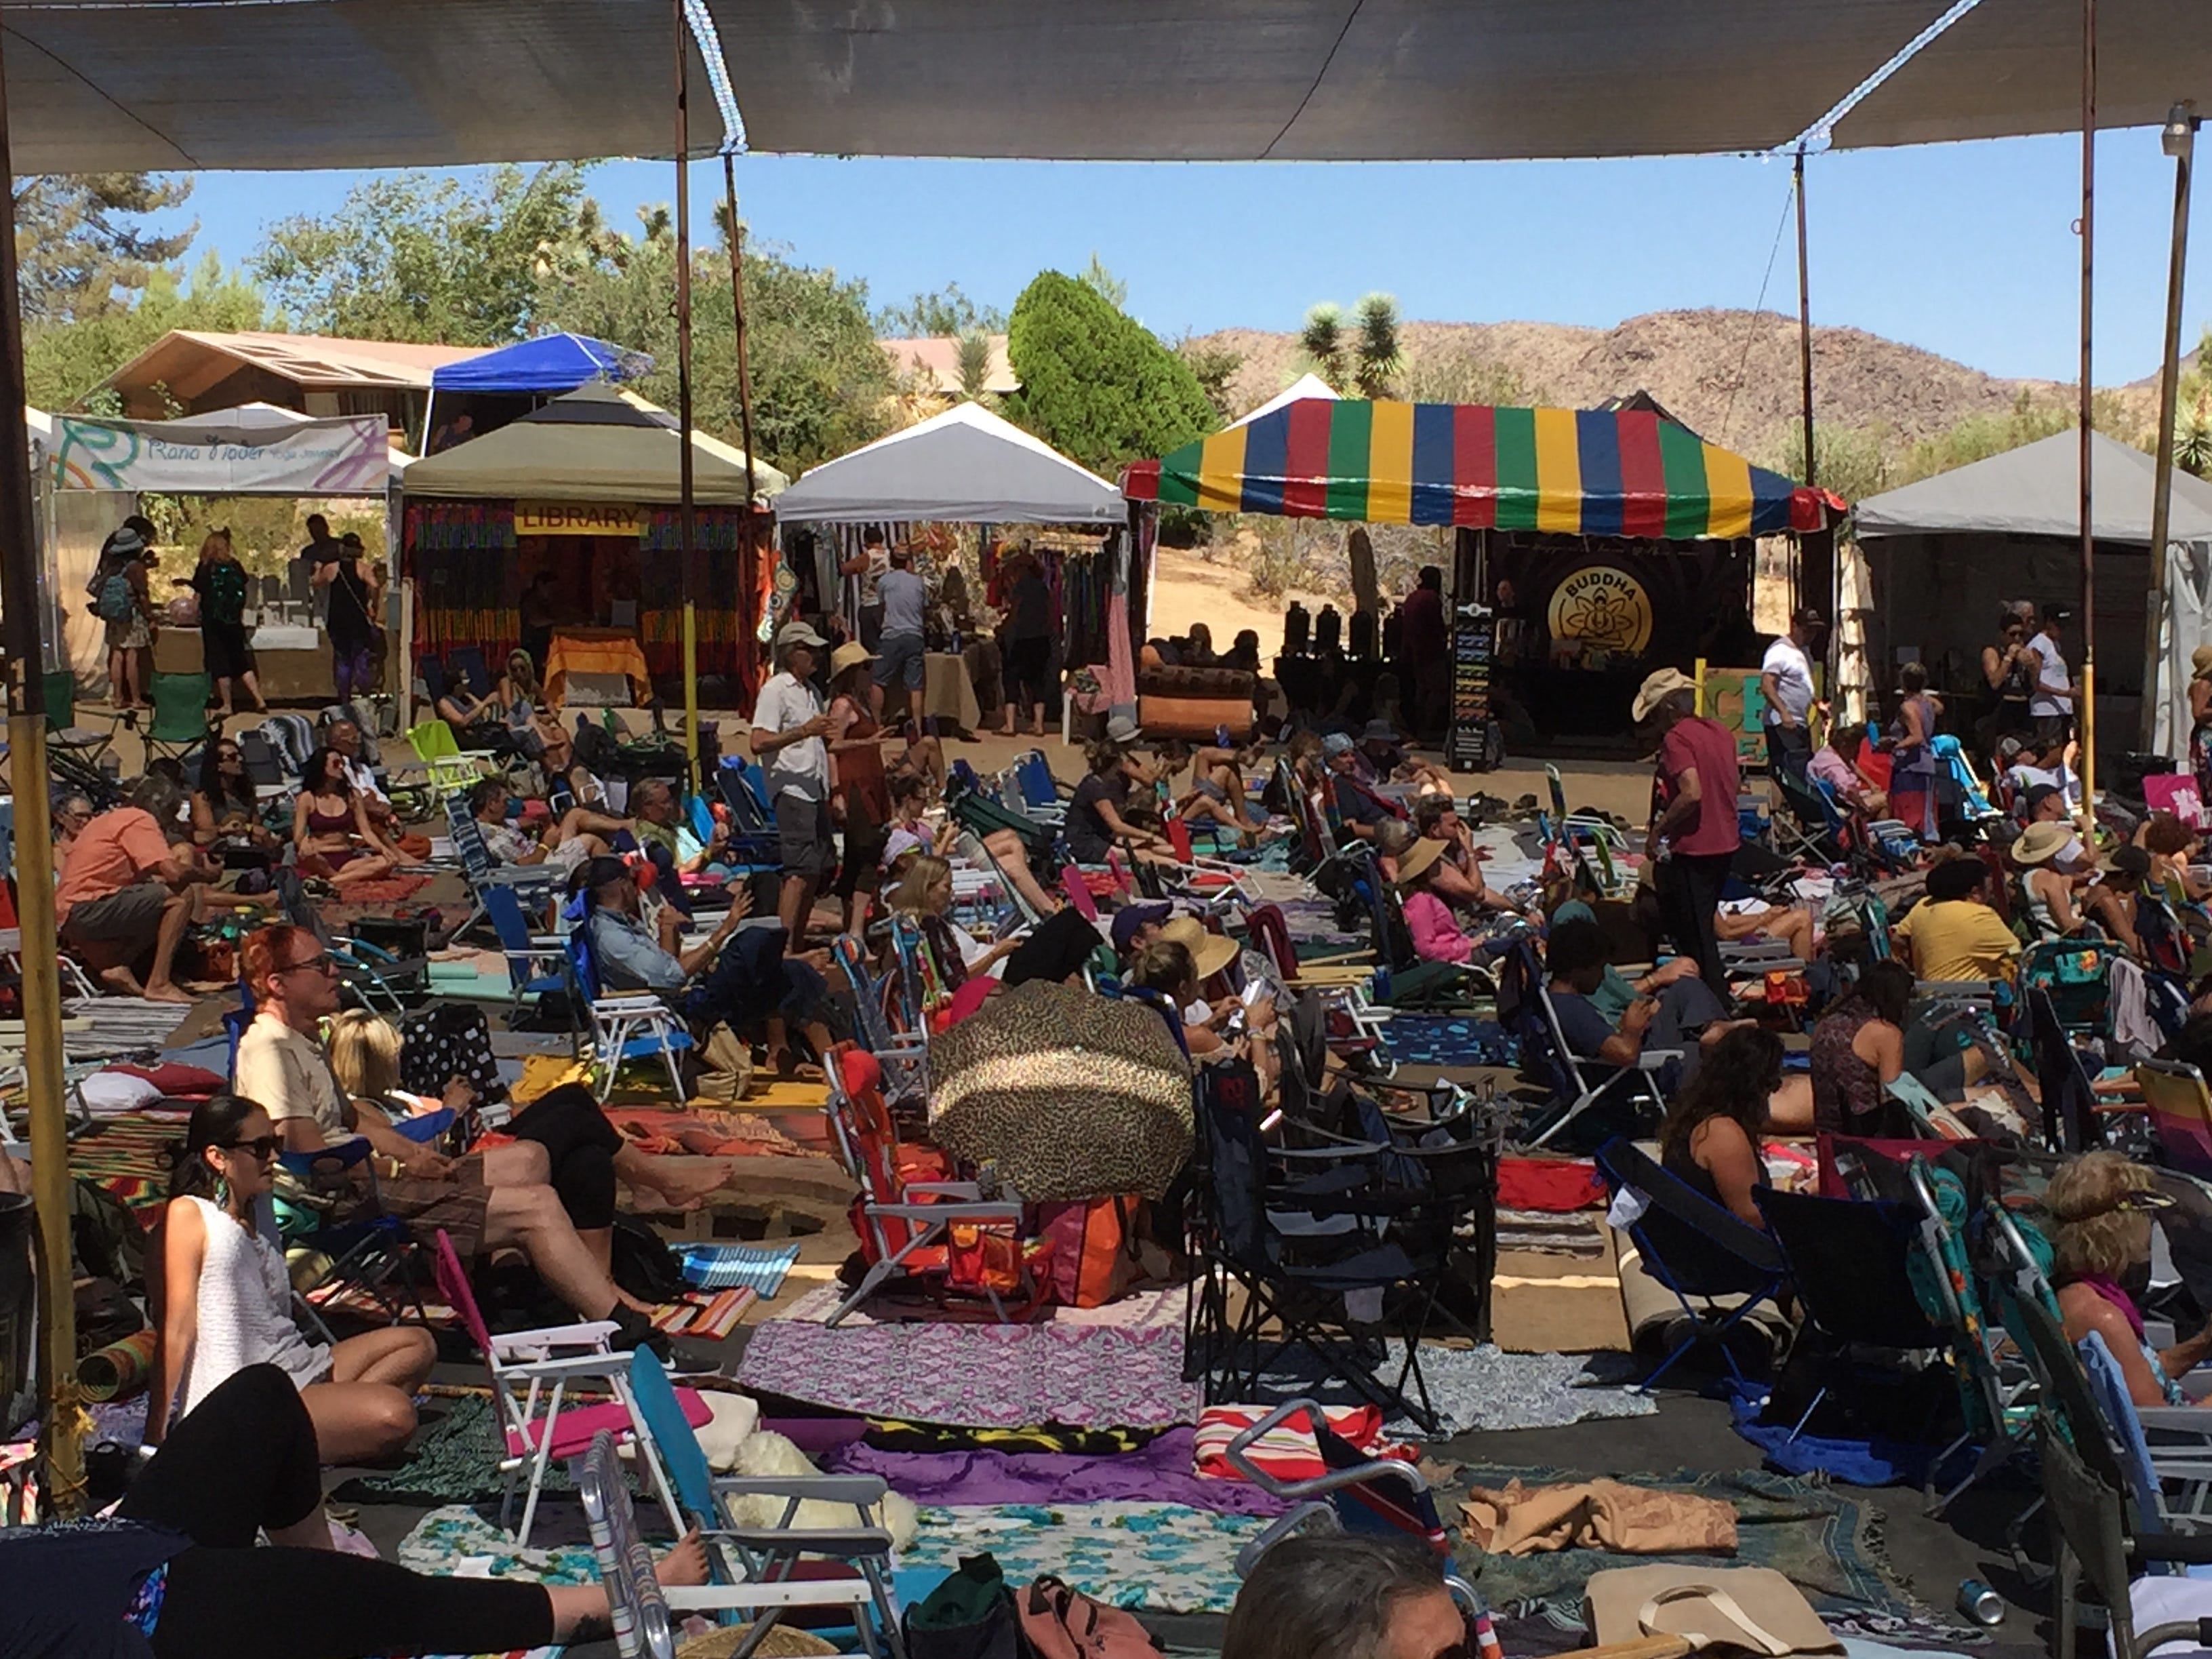 A scene from Saturday's session at the Bhakti Fest in Joshua Tree.